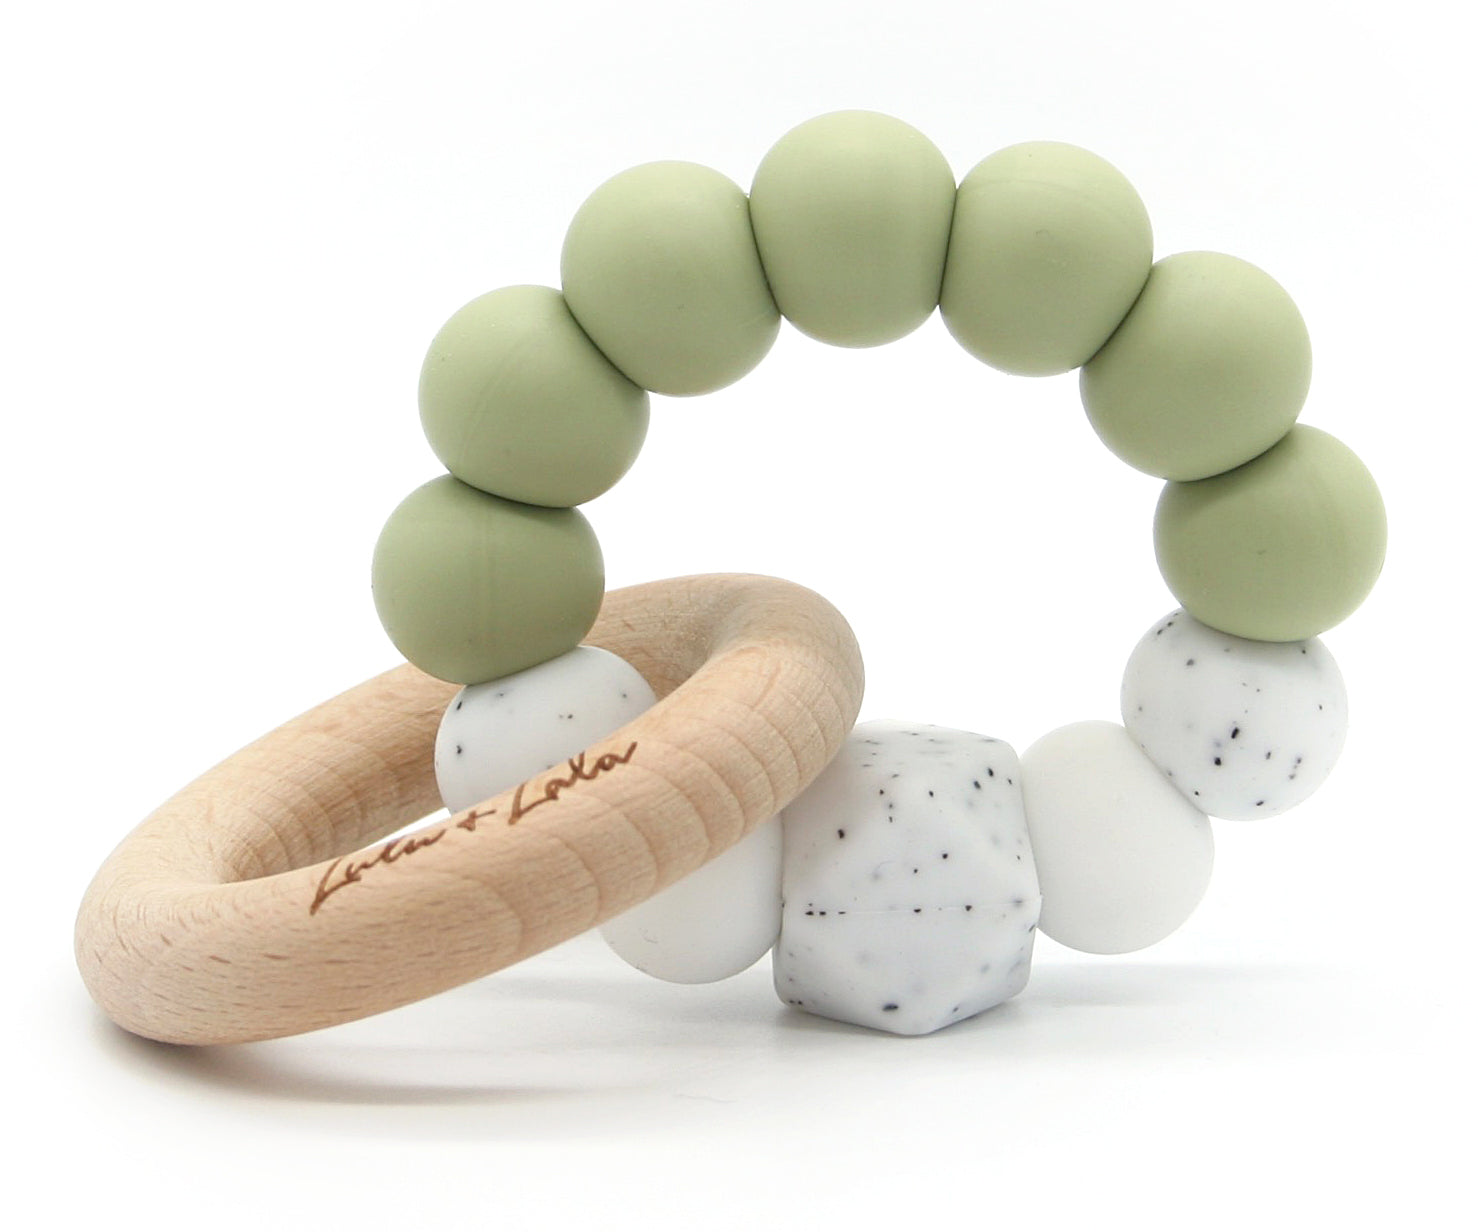 Lulu & Lala - Lala Silicone and Wood Teether - Leaf